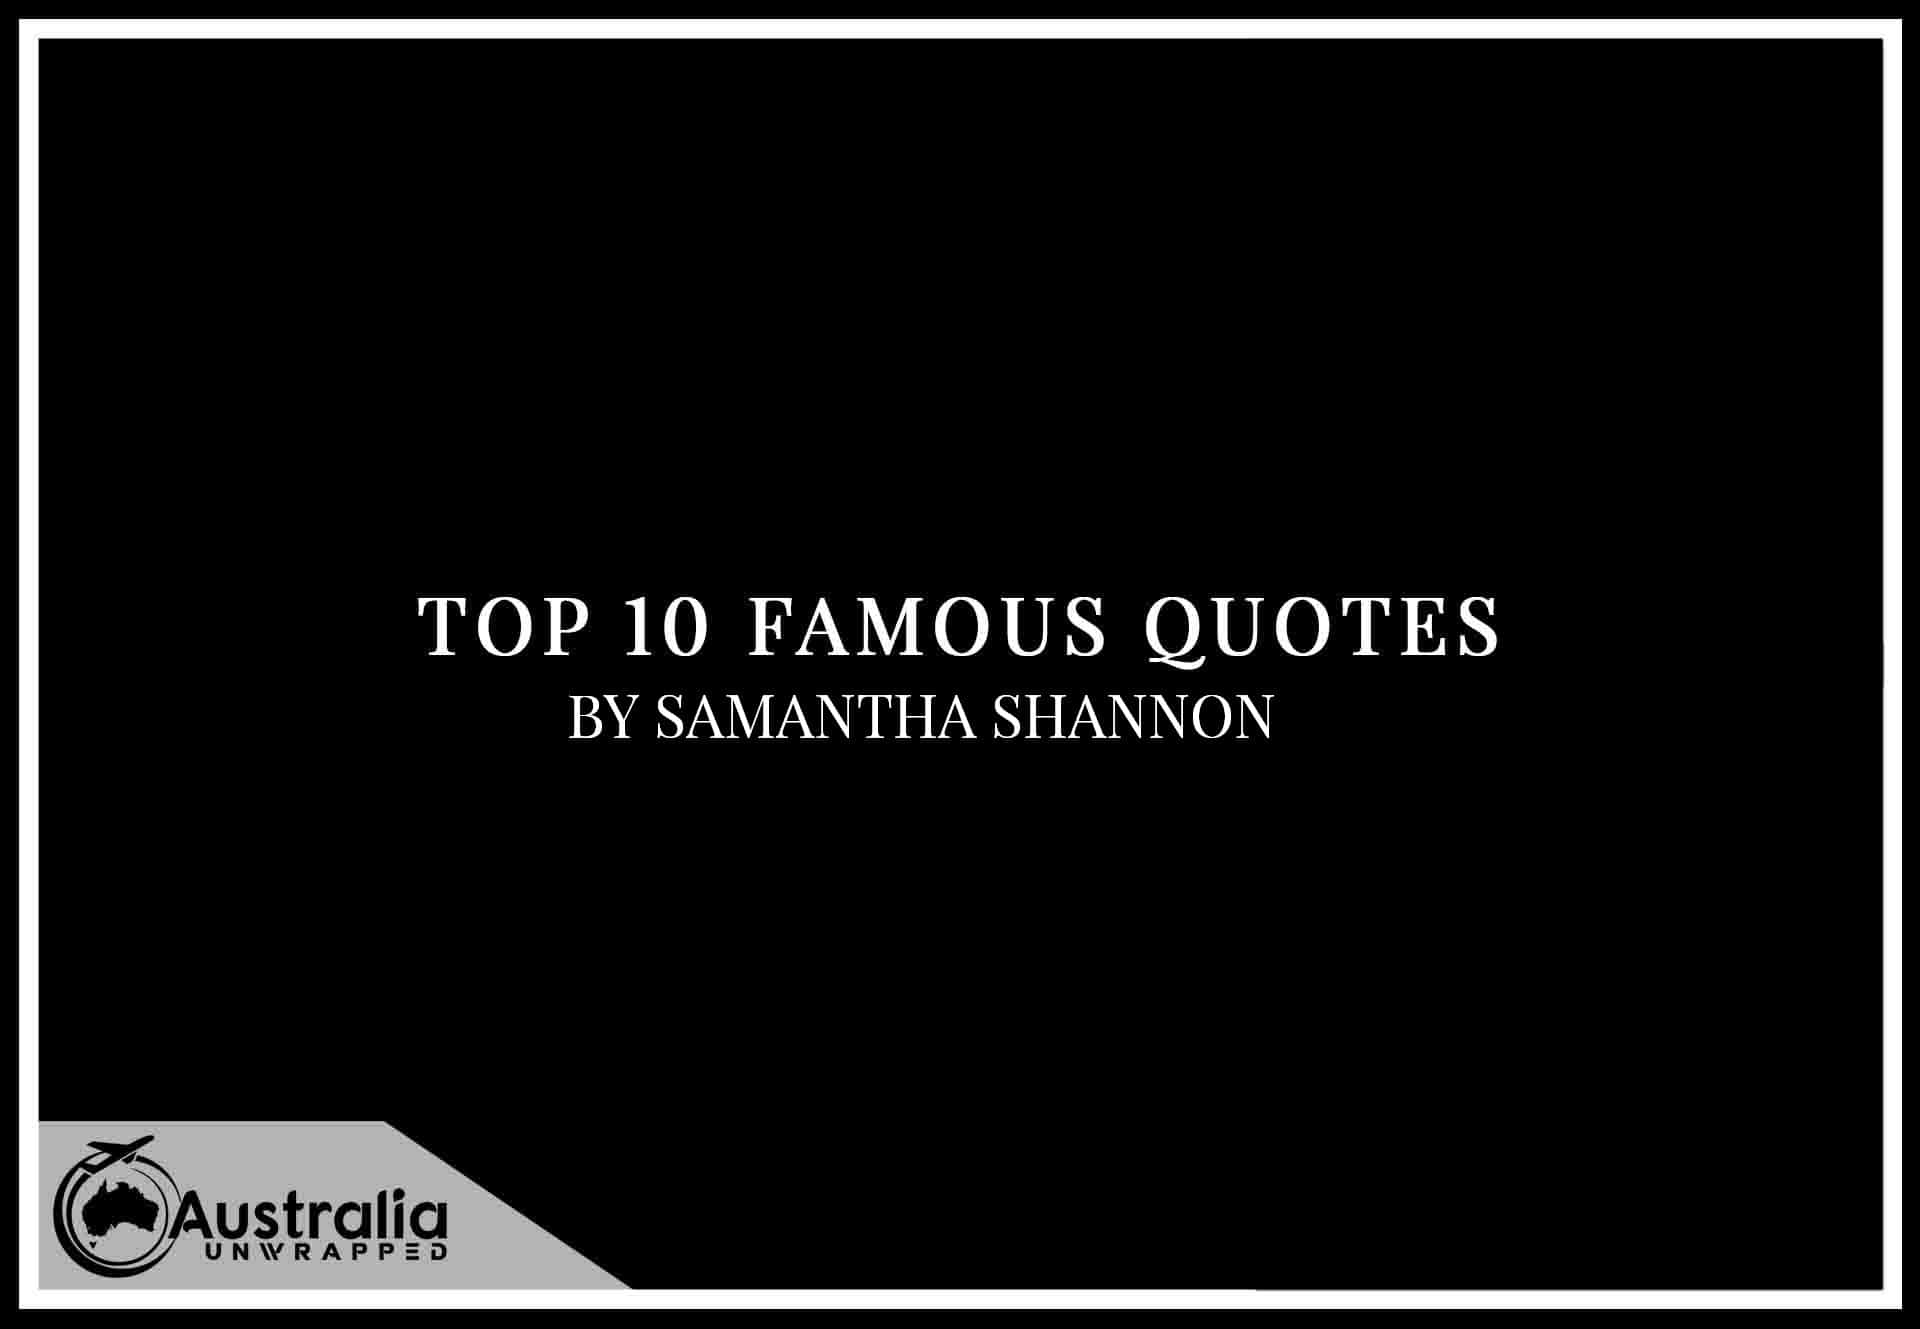 Top 10 Famous Quotes by Author Samantha Shannon